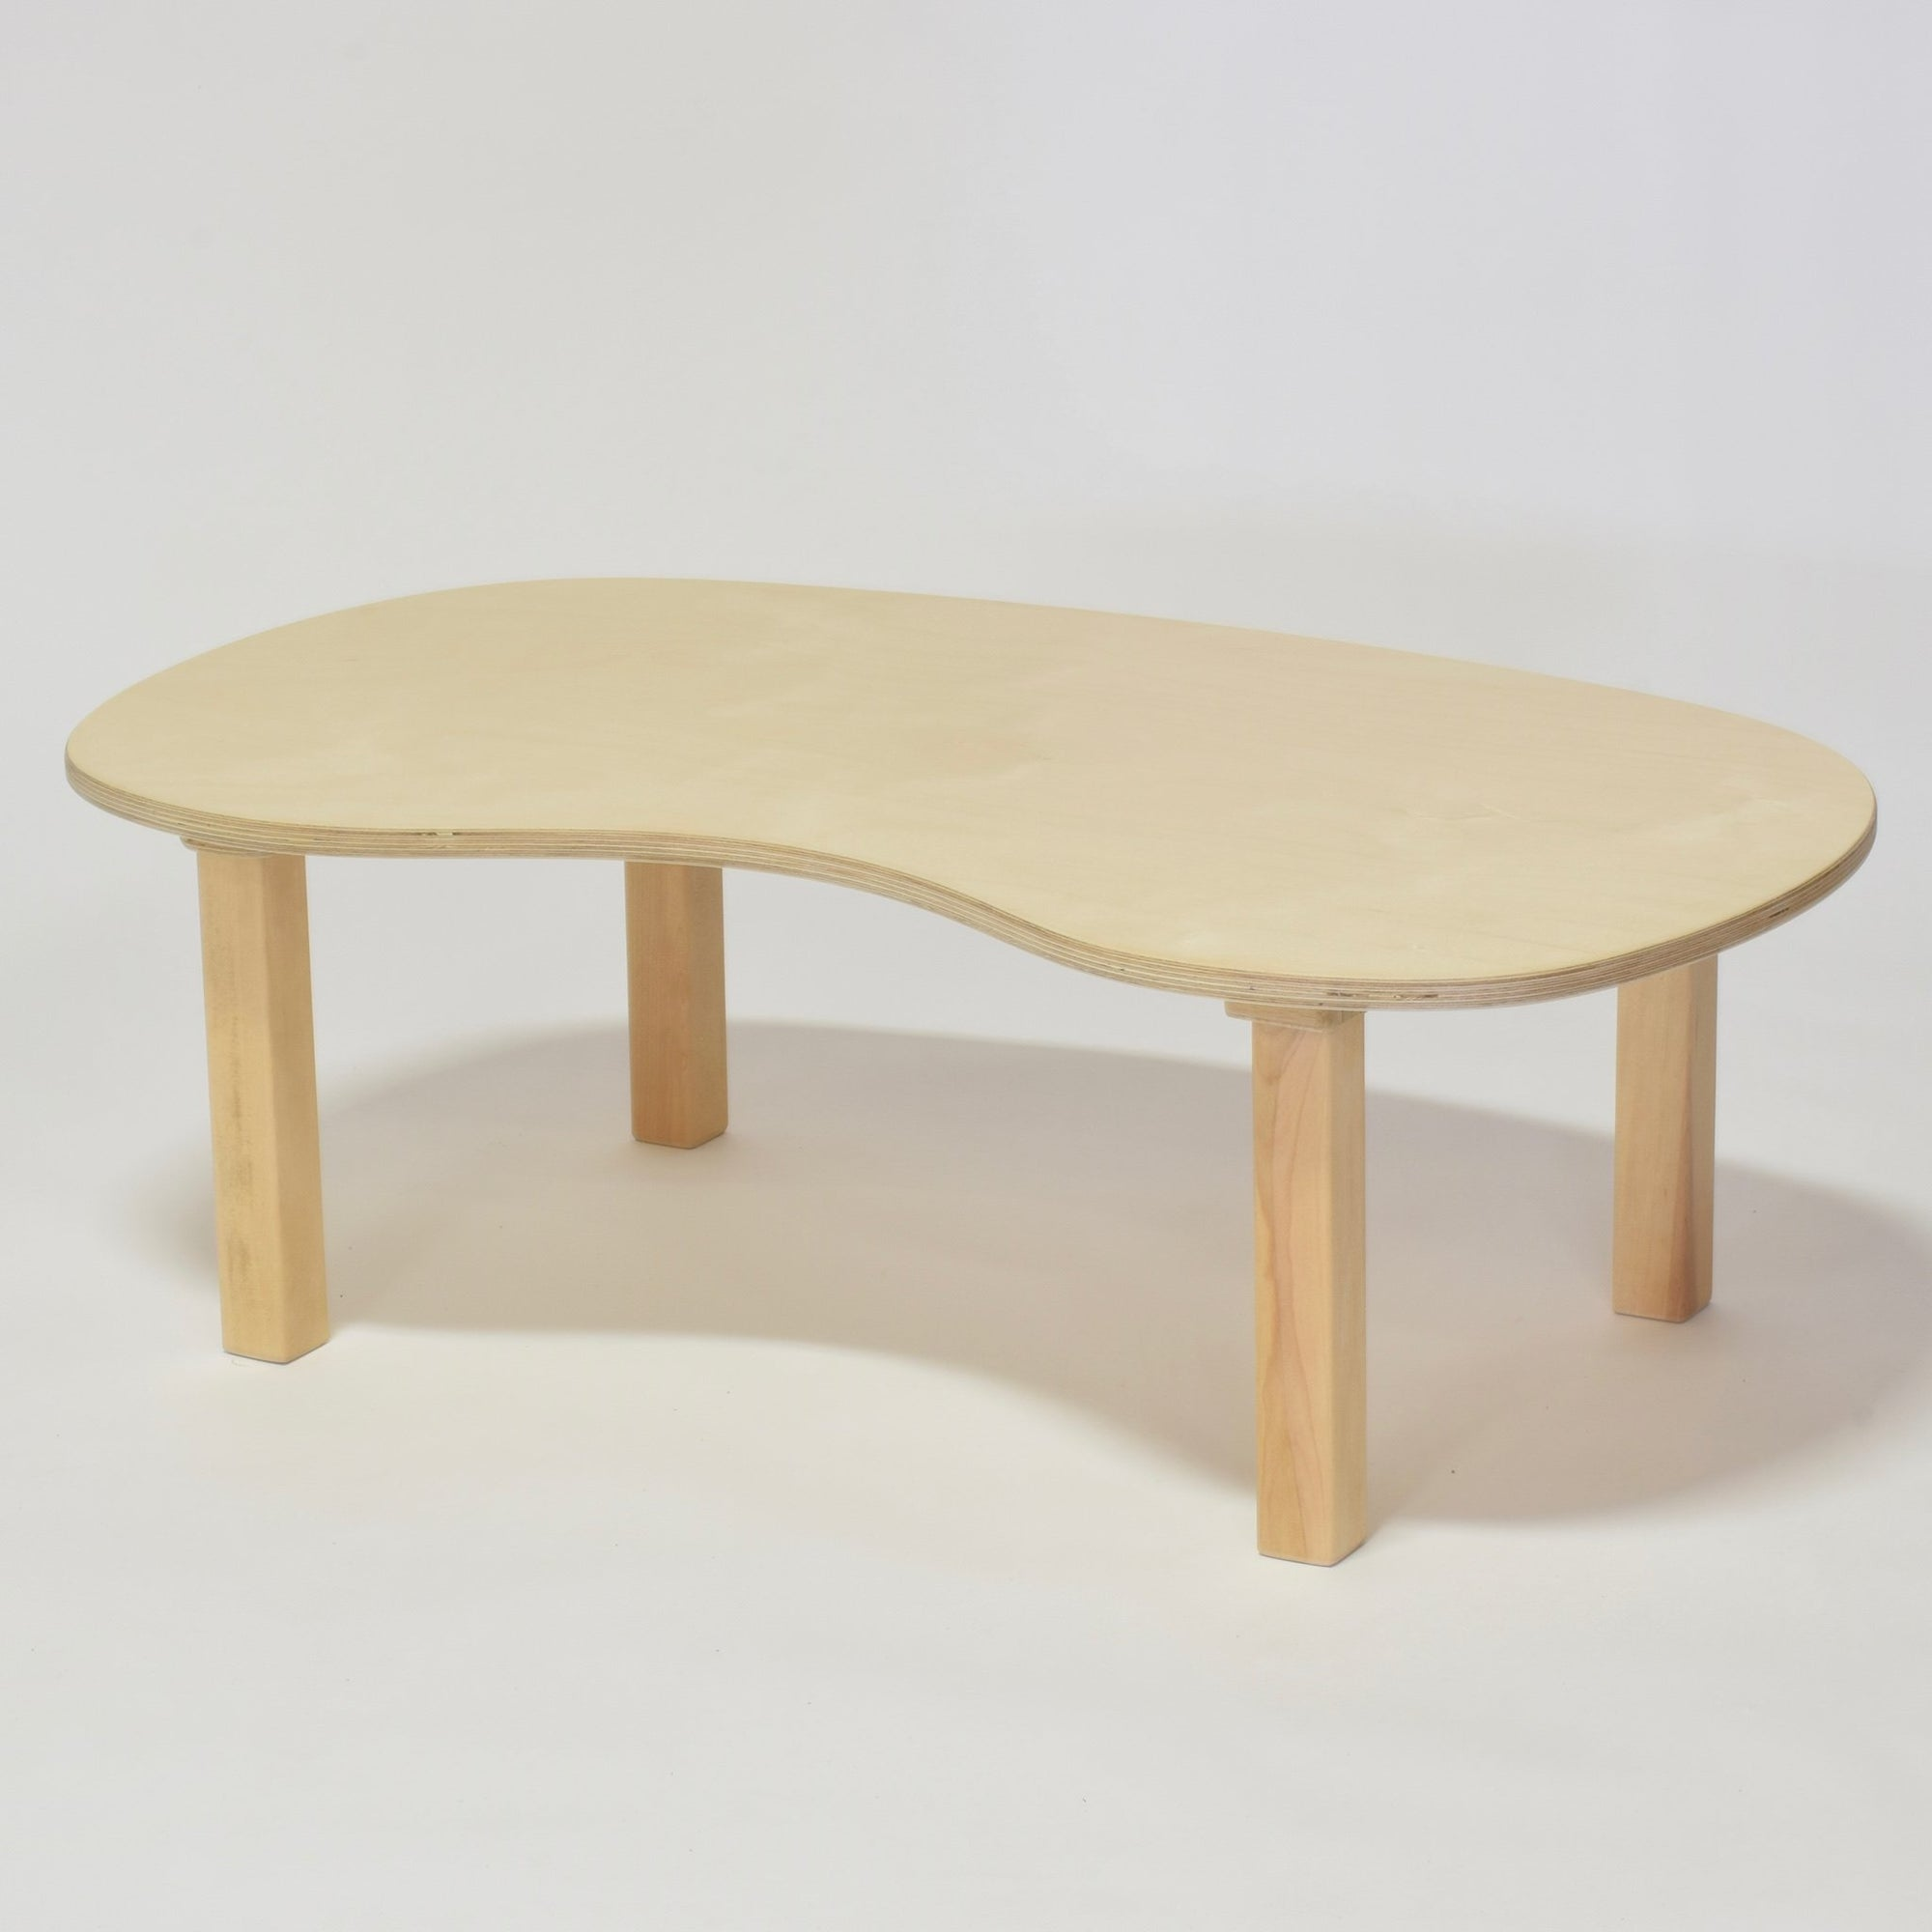 Kidney Table - RAD Children's Furniture - pikler triangle - montessori toddler furniture - climbing triangle - nursery room